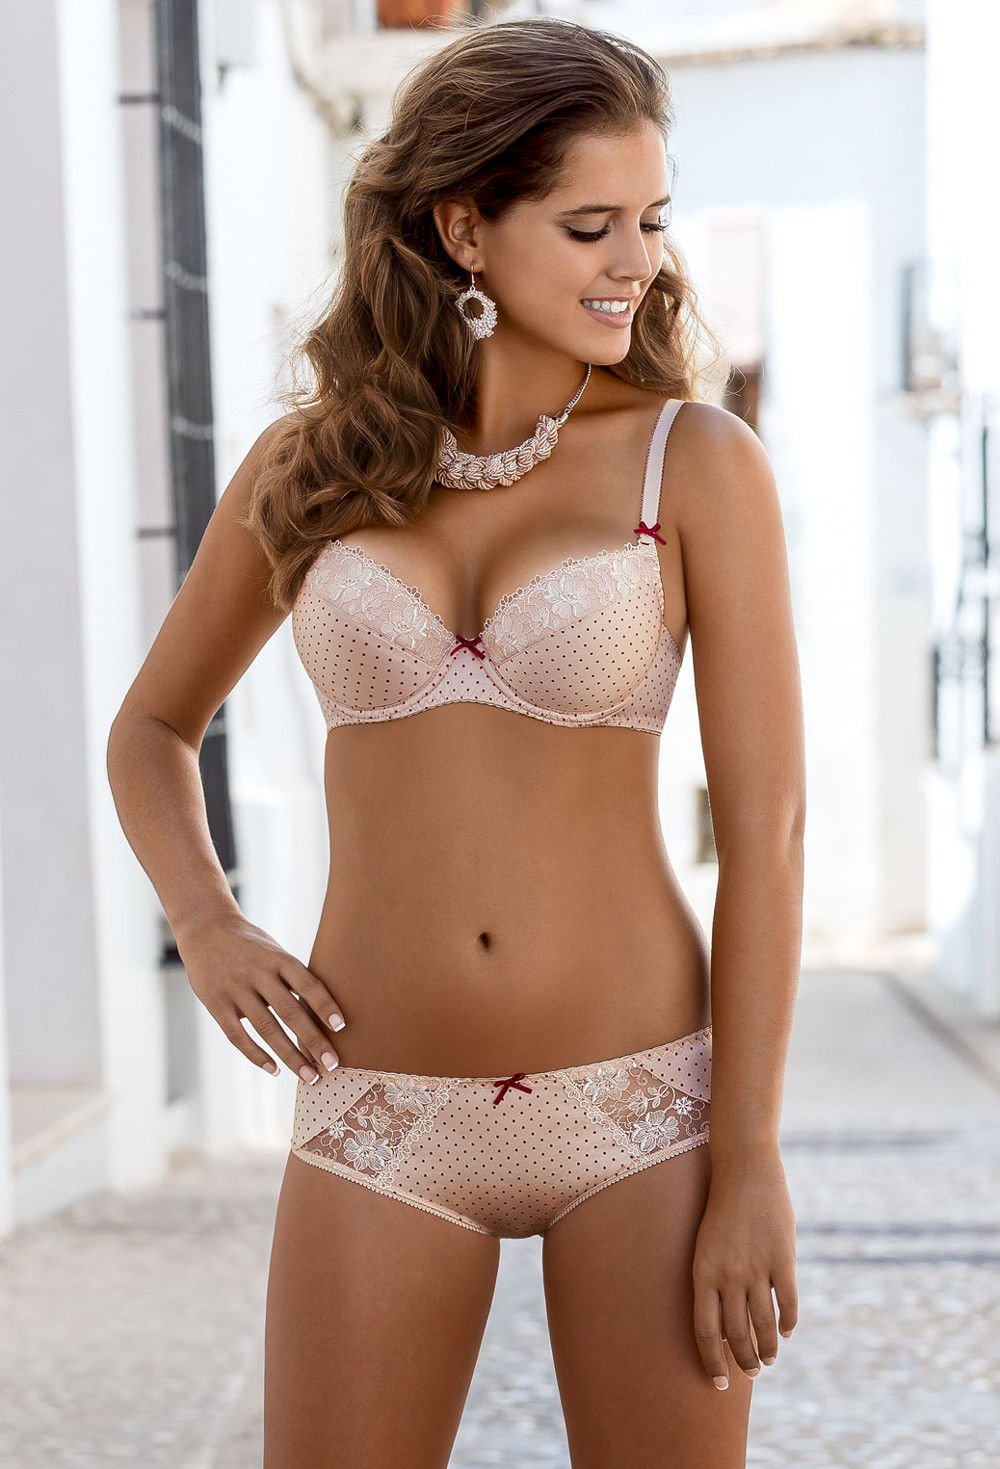 Sexy, fine lingerie including balcony and sheer bras, plus size bras and lace panties for women of all sizes. Sign up with Lavinia's email news & get 10% off first order. Free Shipping & Free Returns (US).